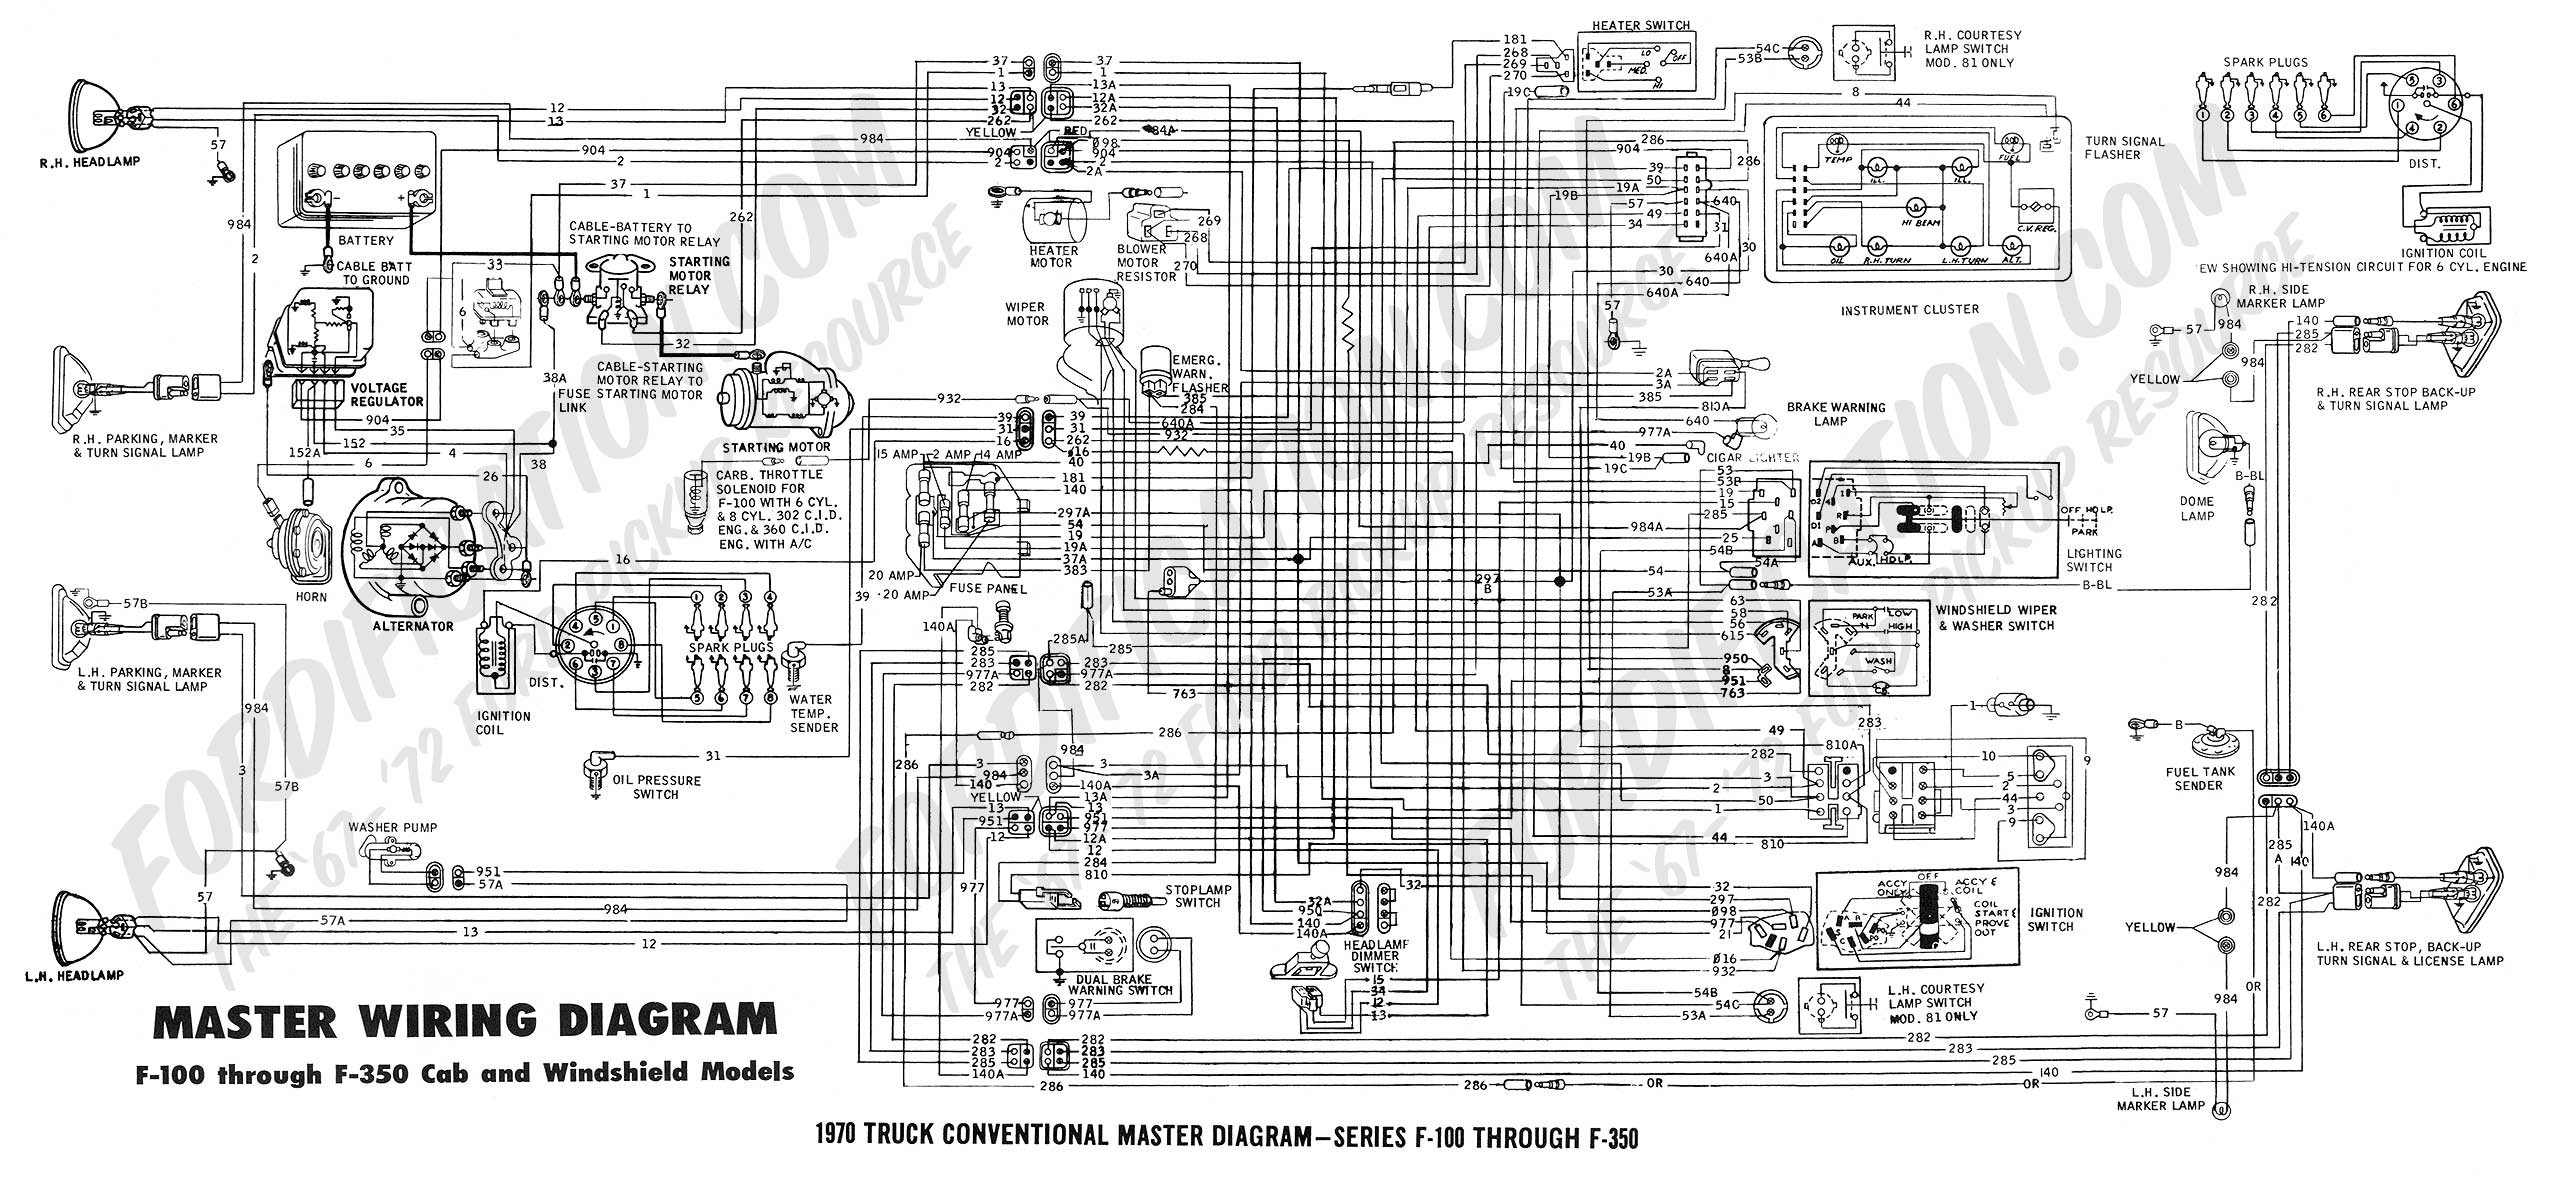 1989 Ford F 350 Wiring Diagram Data Schema Fuel Pump For 1986 Diagrams Schematic Pumps